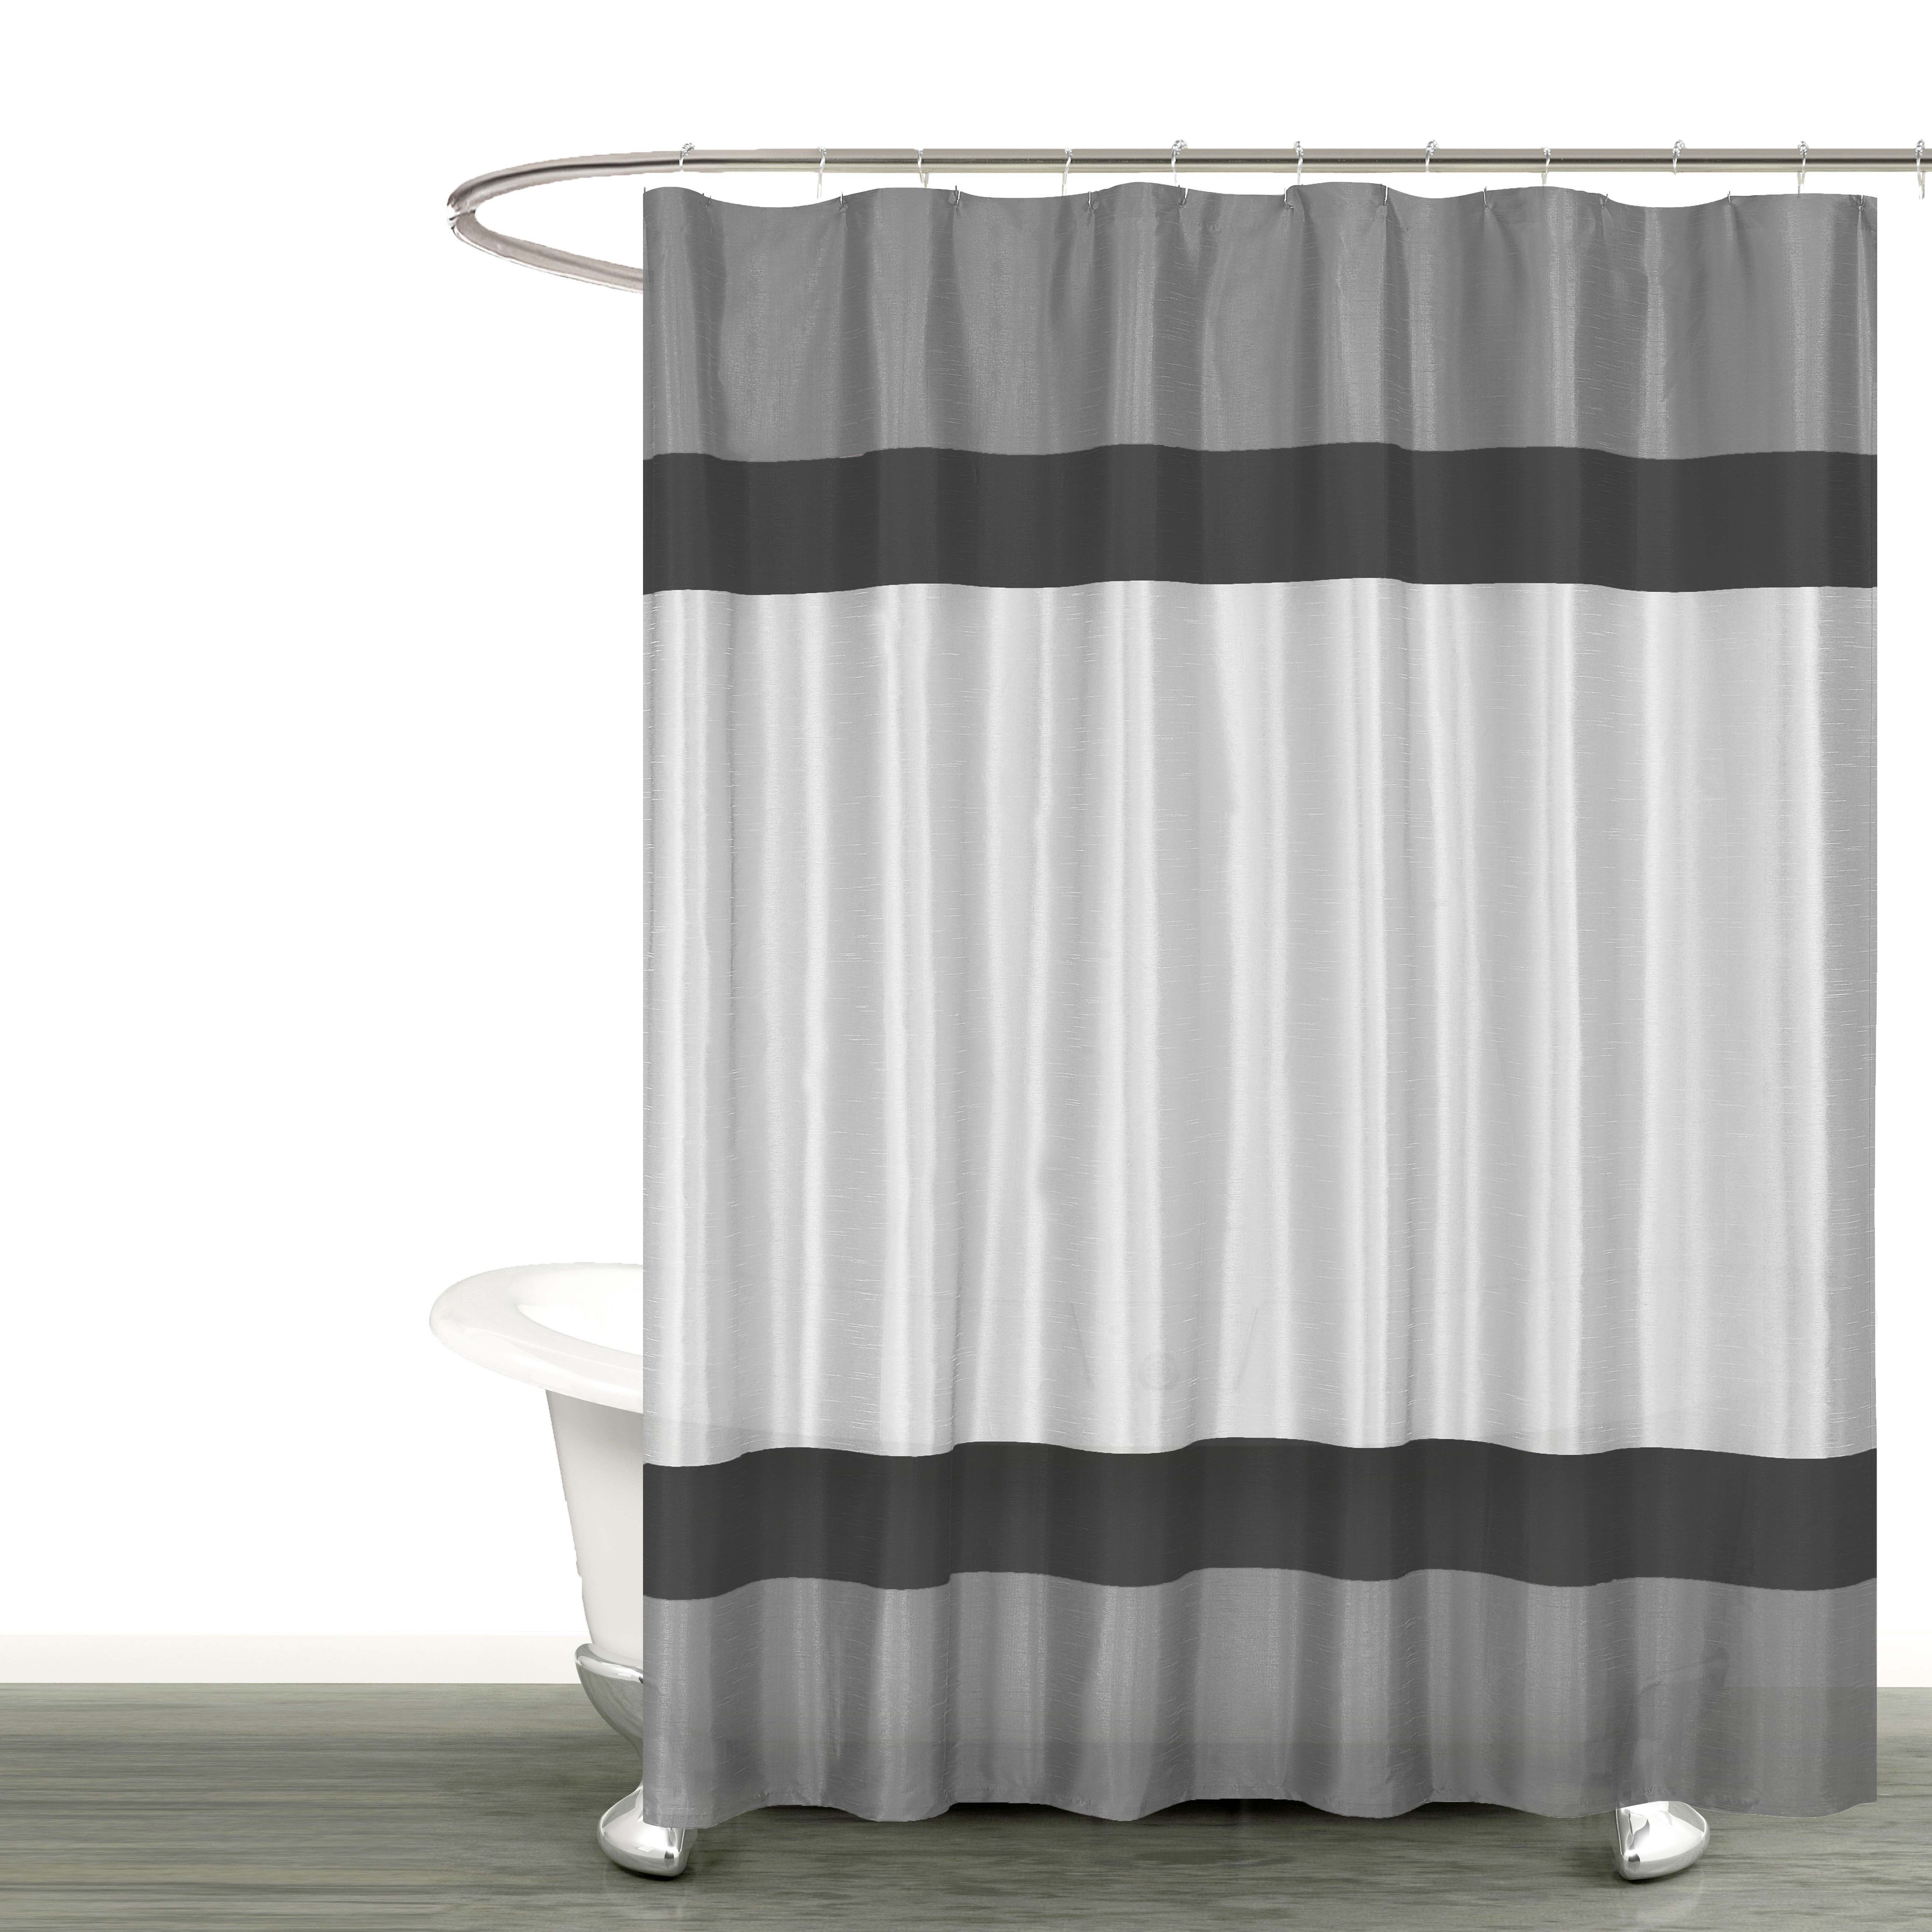 "Gray Silver and Black Fabric Shower Curtain with Stripe Design: Bathroom and More Collection (72"" W x 78"" Extra Long)"